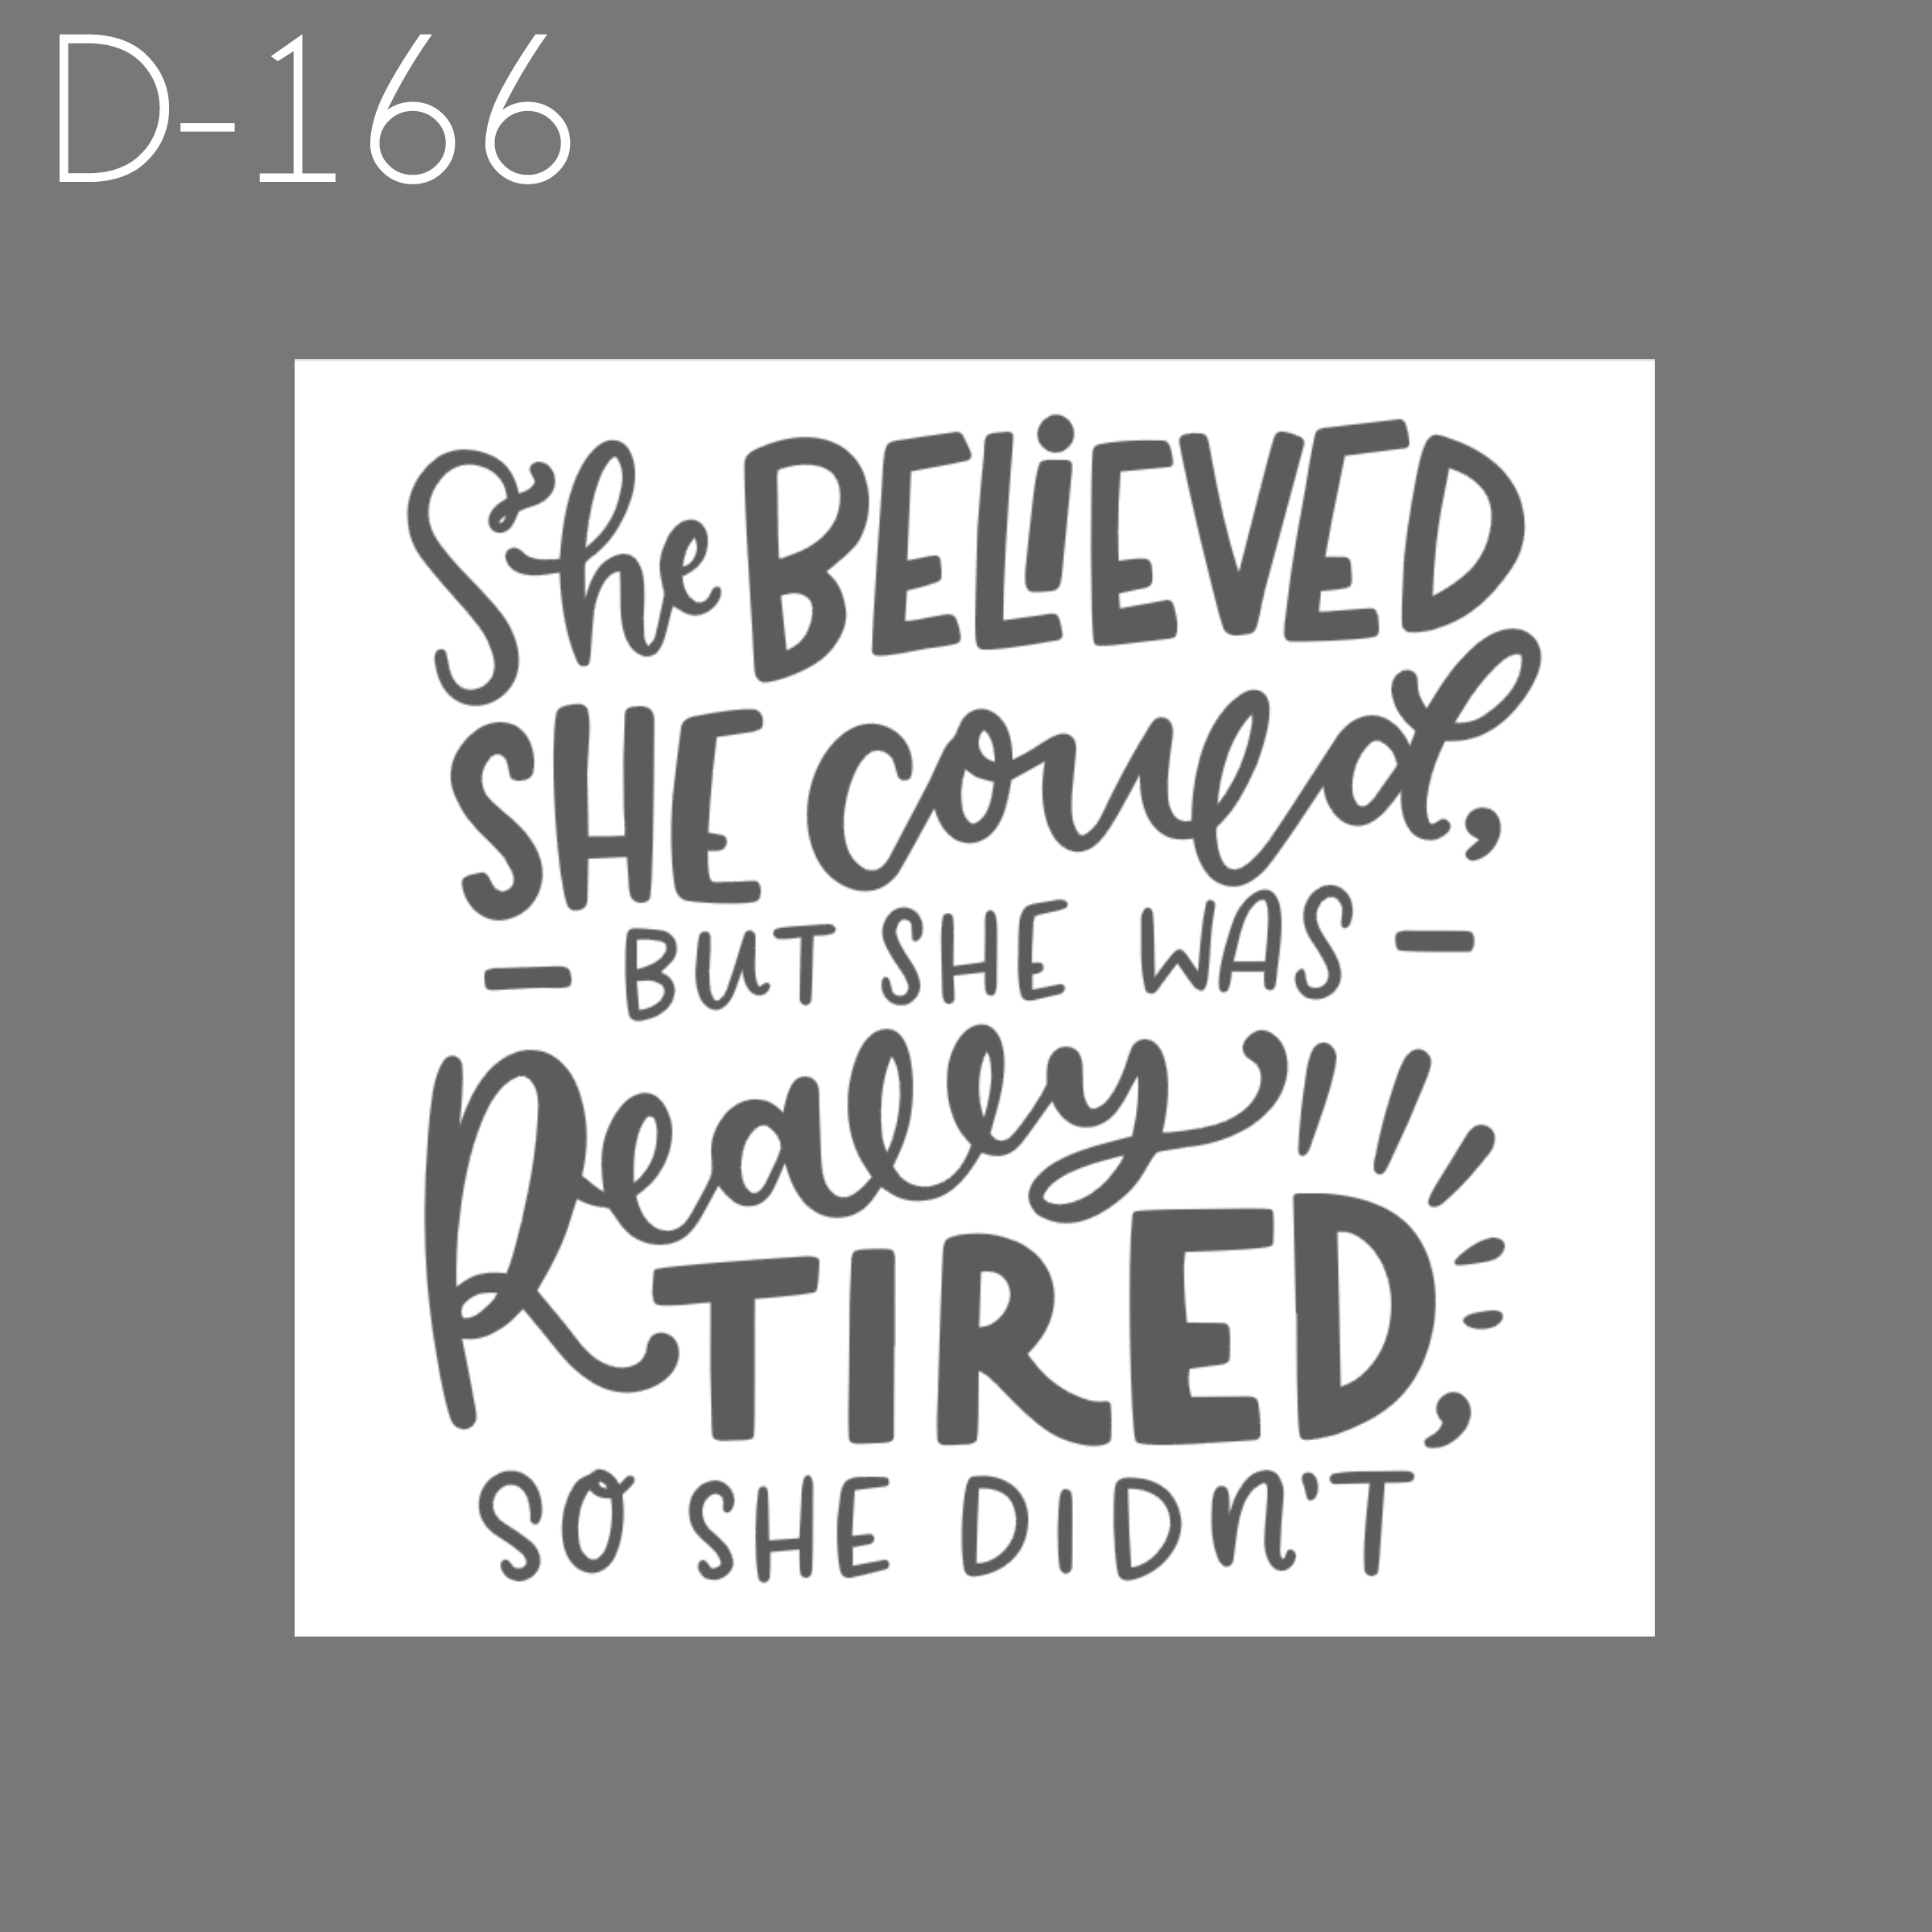 D166 - She Was Tired.jpg